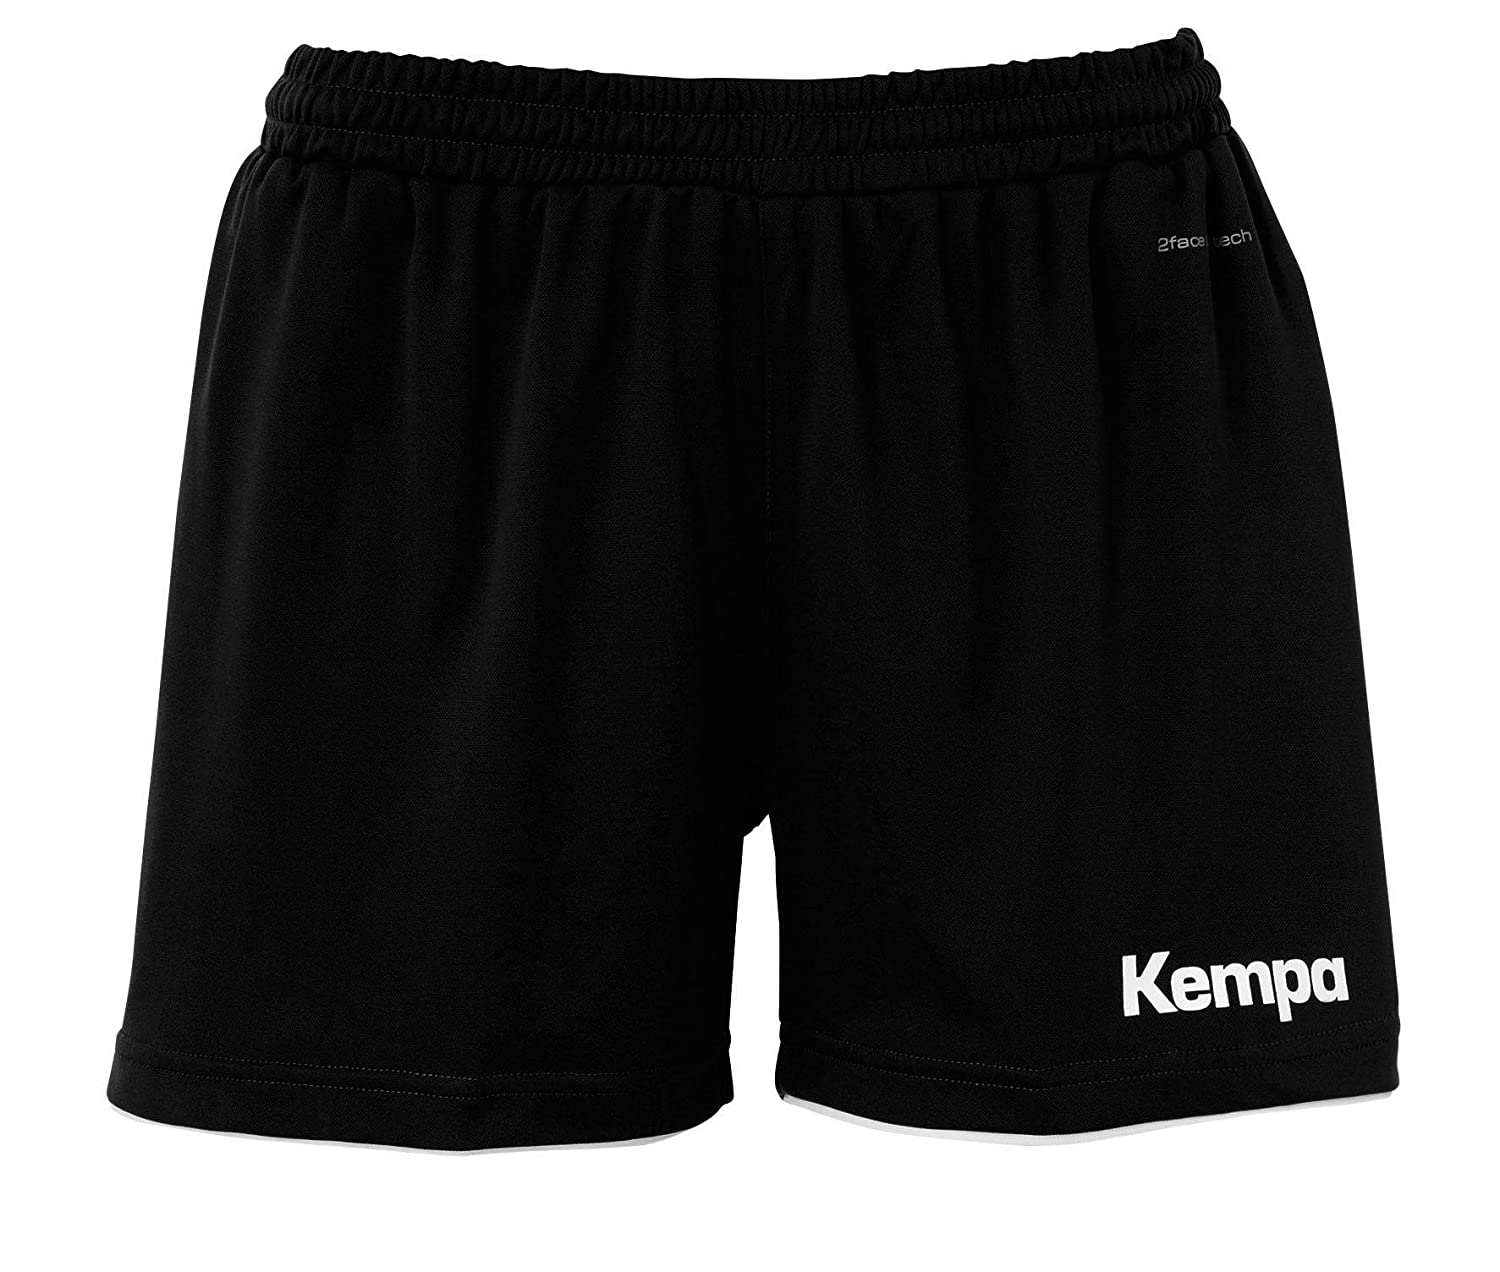 Kempa Emotion Shorts Women Bekleidung Teamsport